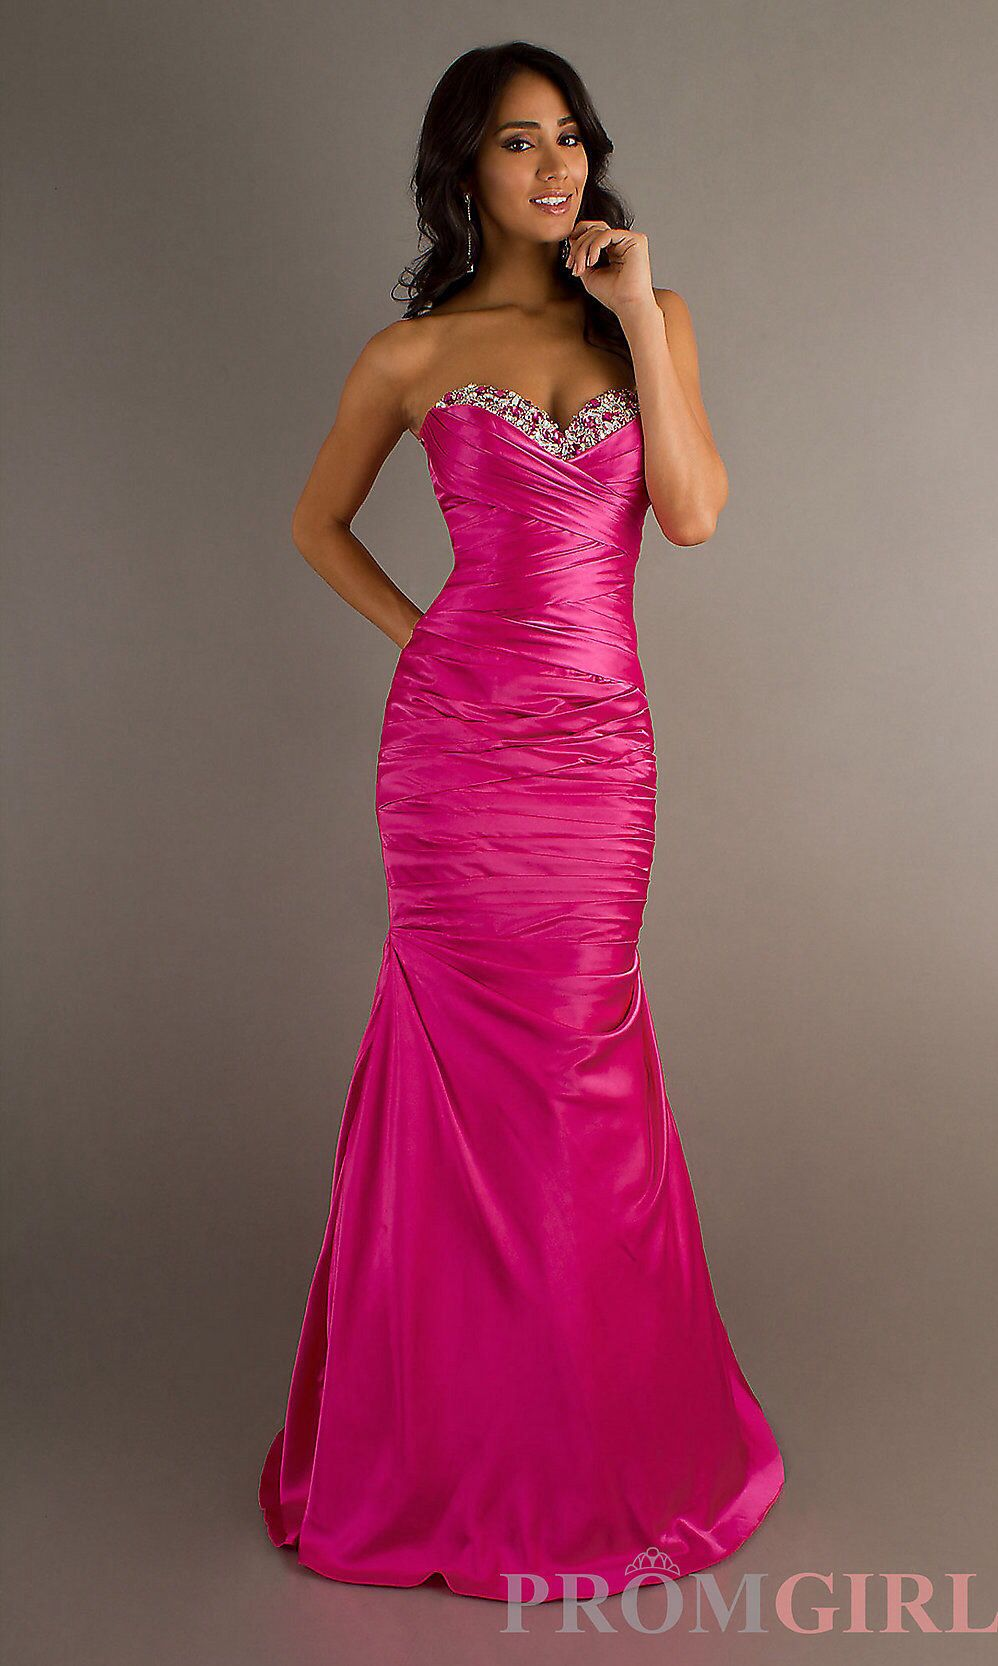 Prom dress-Mermaid style pink with sparkles at the top | Prom ...